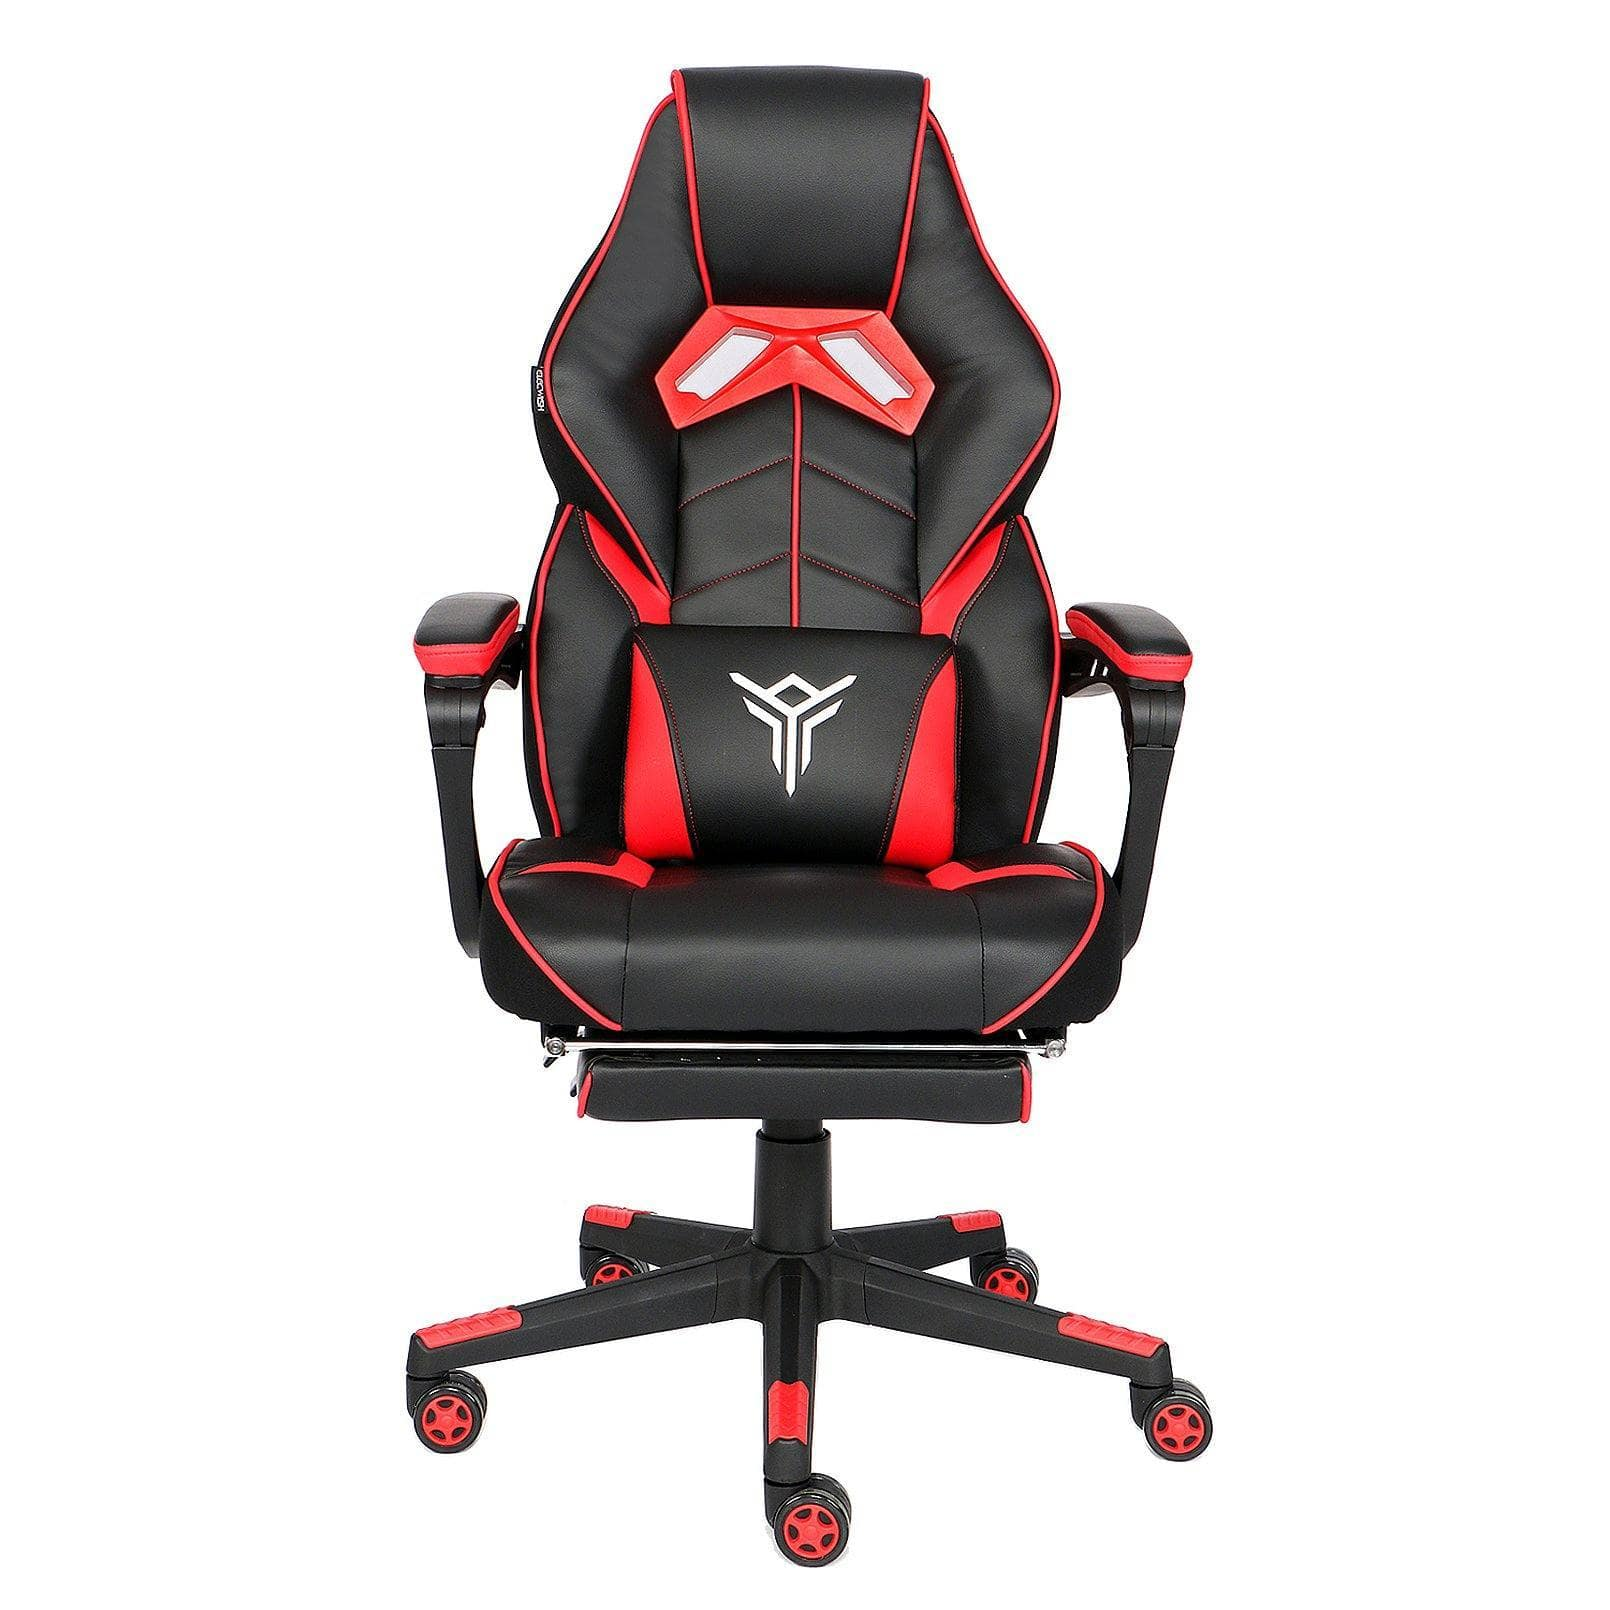 ELECWISH Swivel Height Adjustable Gaming Chair